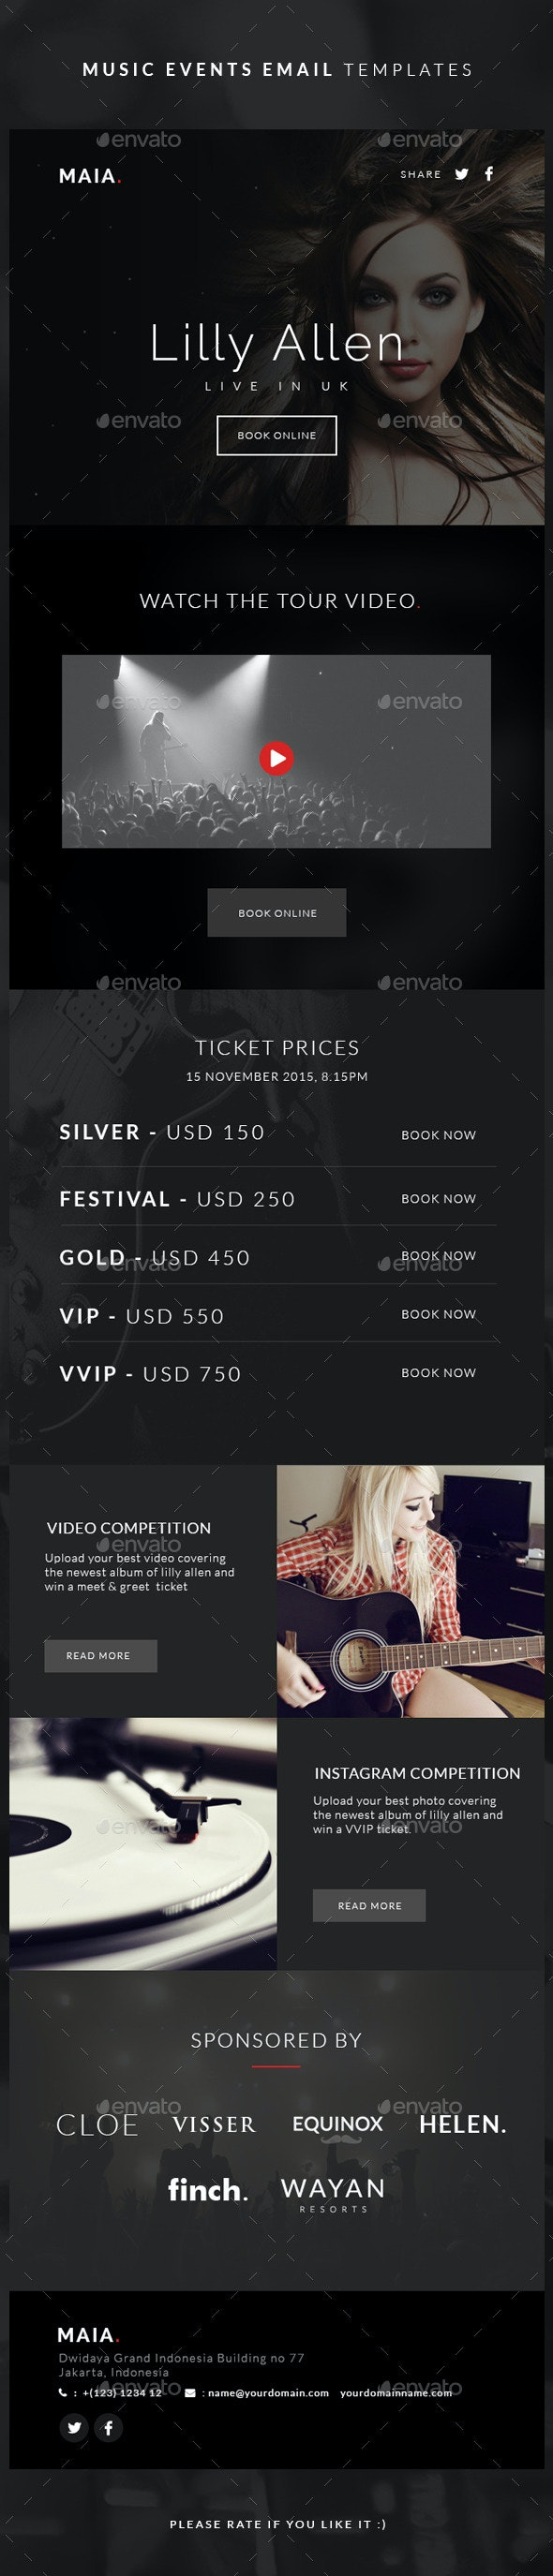 Music Events Email Templates - Maia - E-newsletters Web Elements